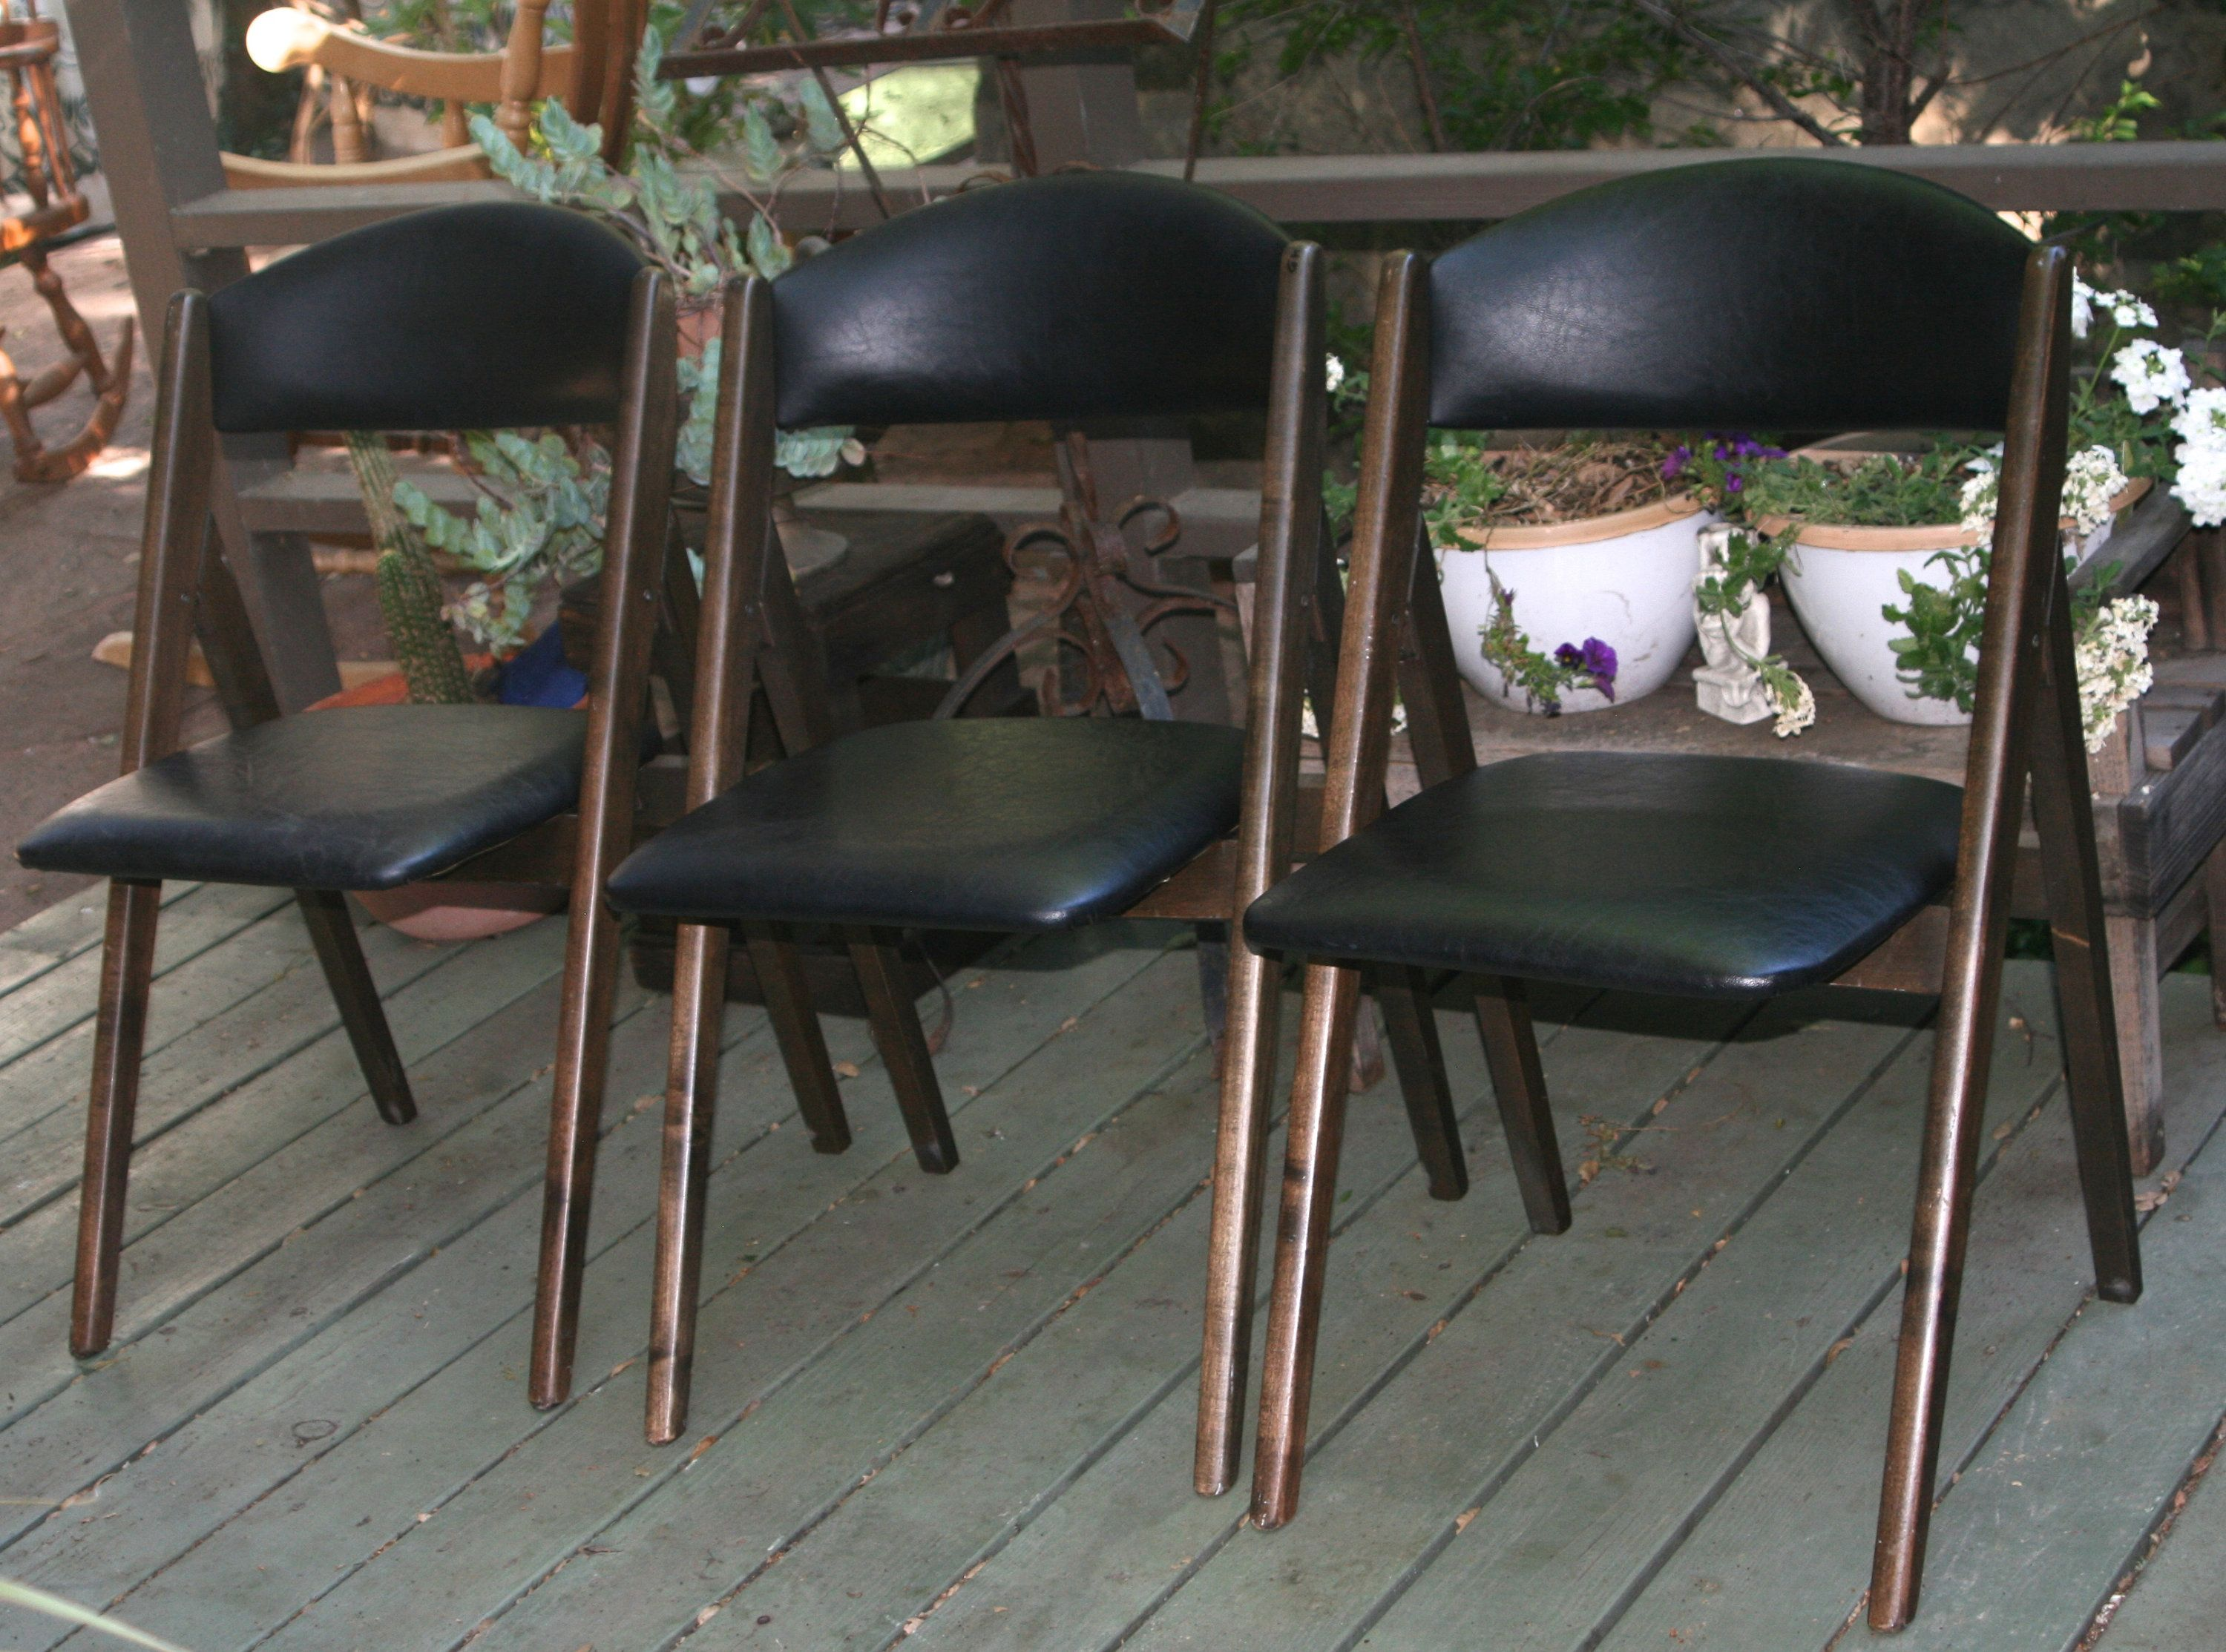 Stakmore Folding Chairs Vintage.Set Of 3 Vintage Mid Century Stakmore Folding Chairs Wood